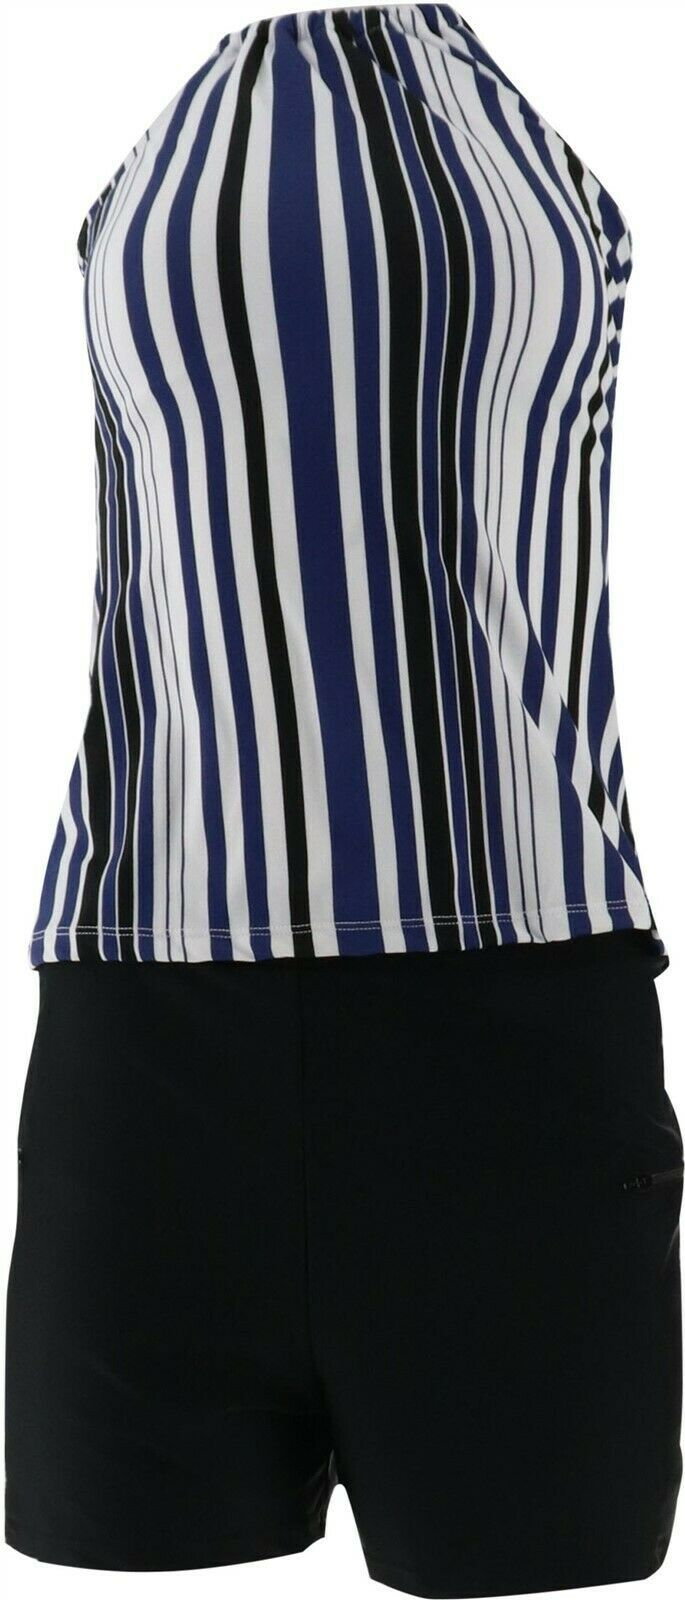 Primary image for Isaac Mizrahi Striped Halterkini Swim Short Navy Black 10 NEW A303689